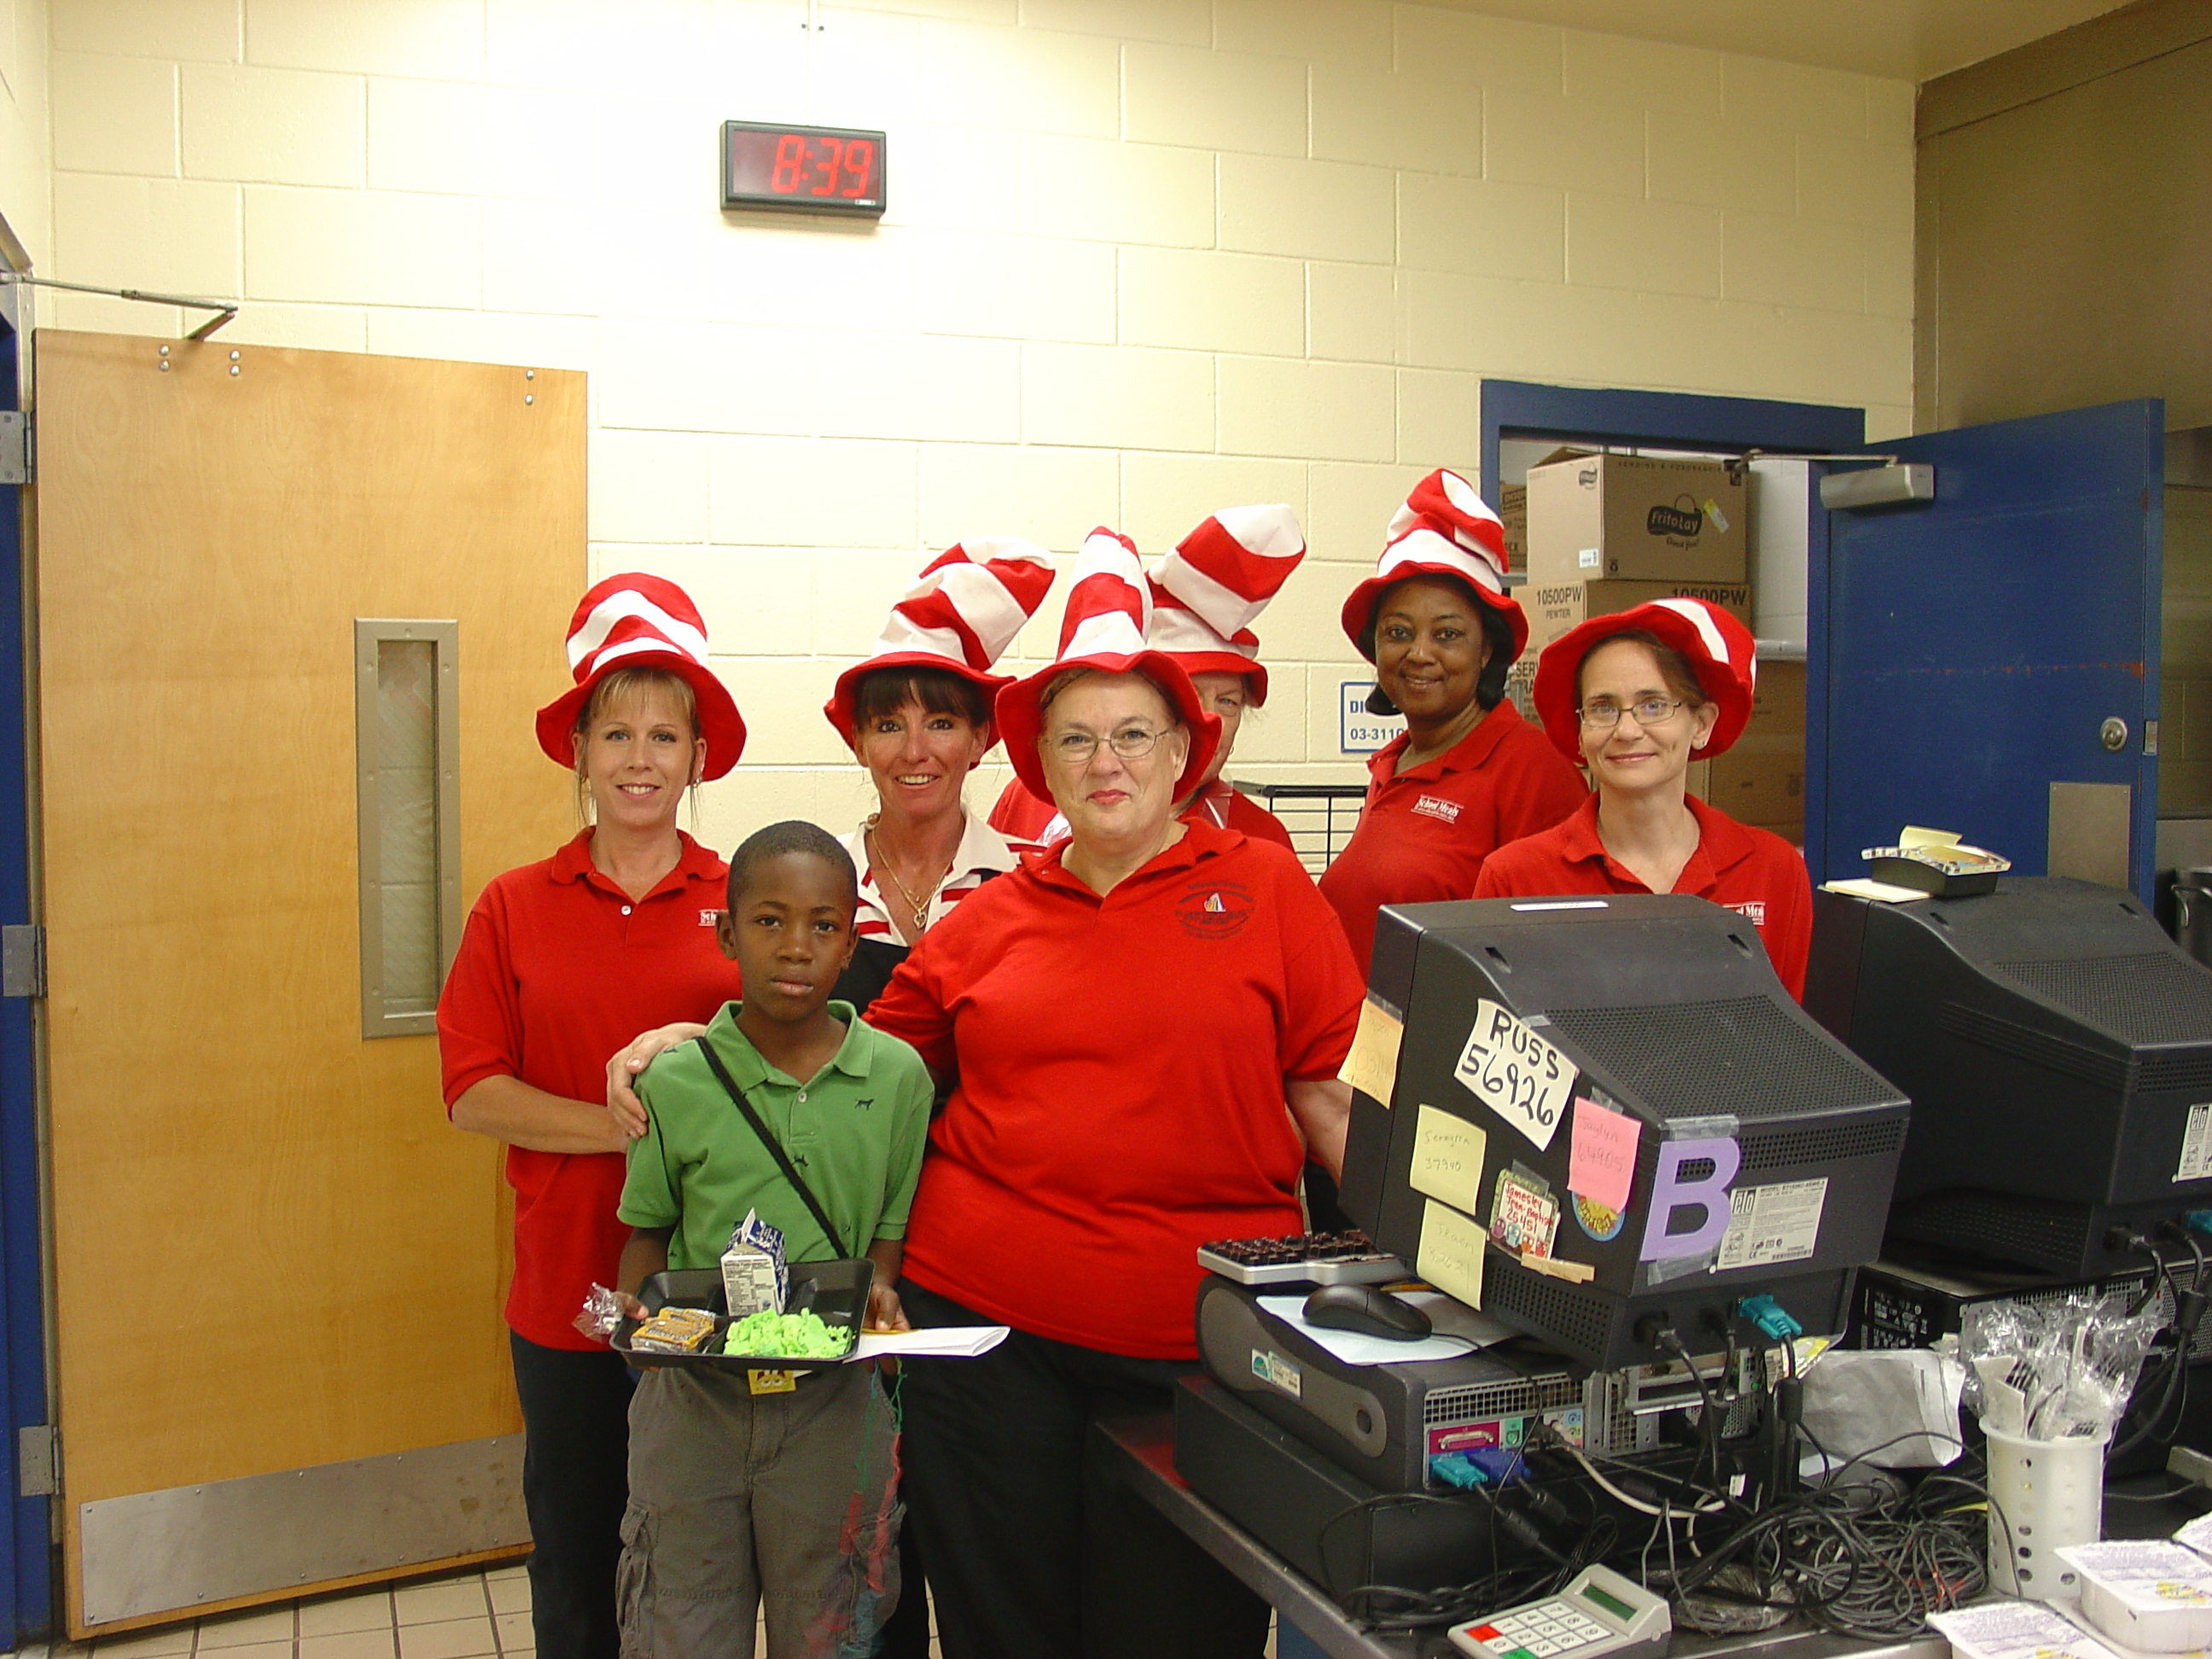 St. Lucie Elementary celebrates Dr. Seuss Day